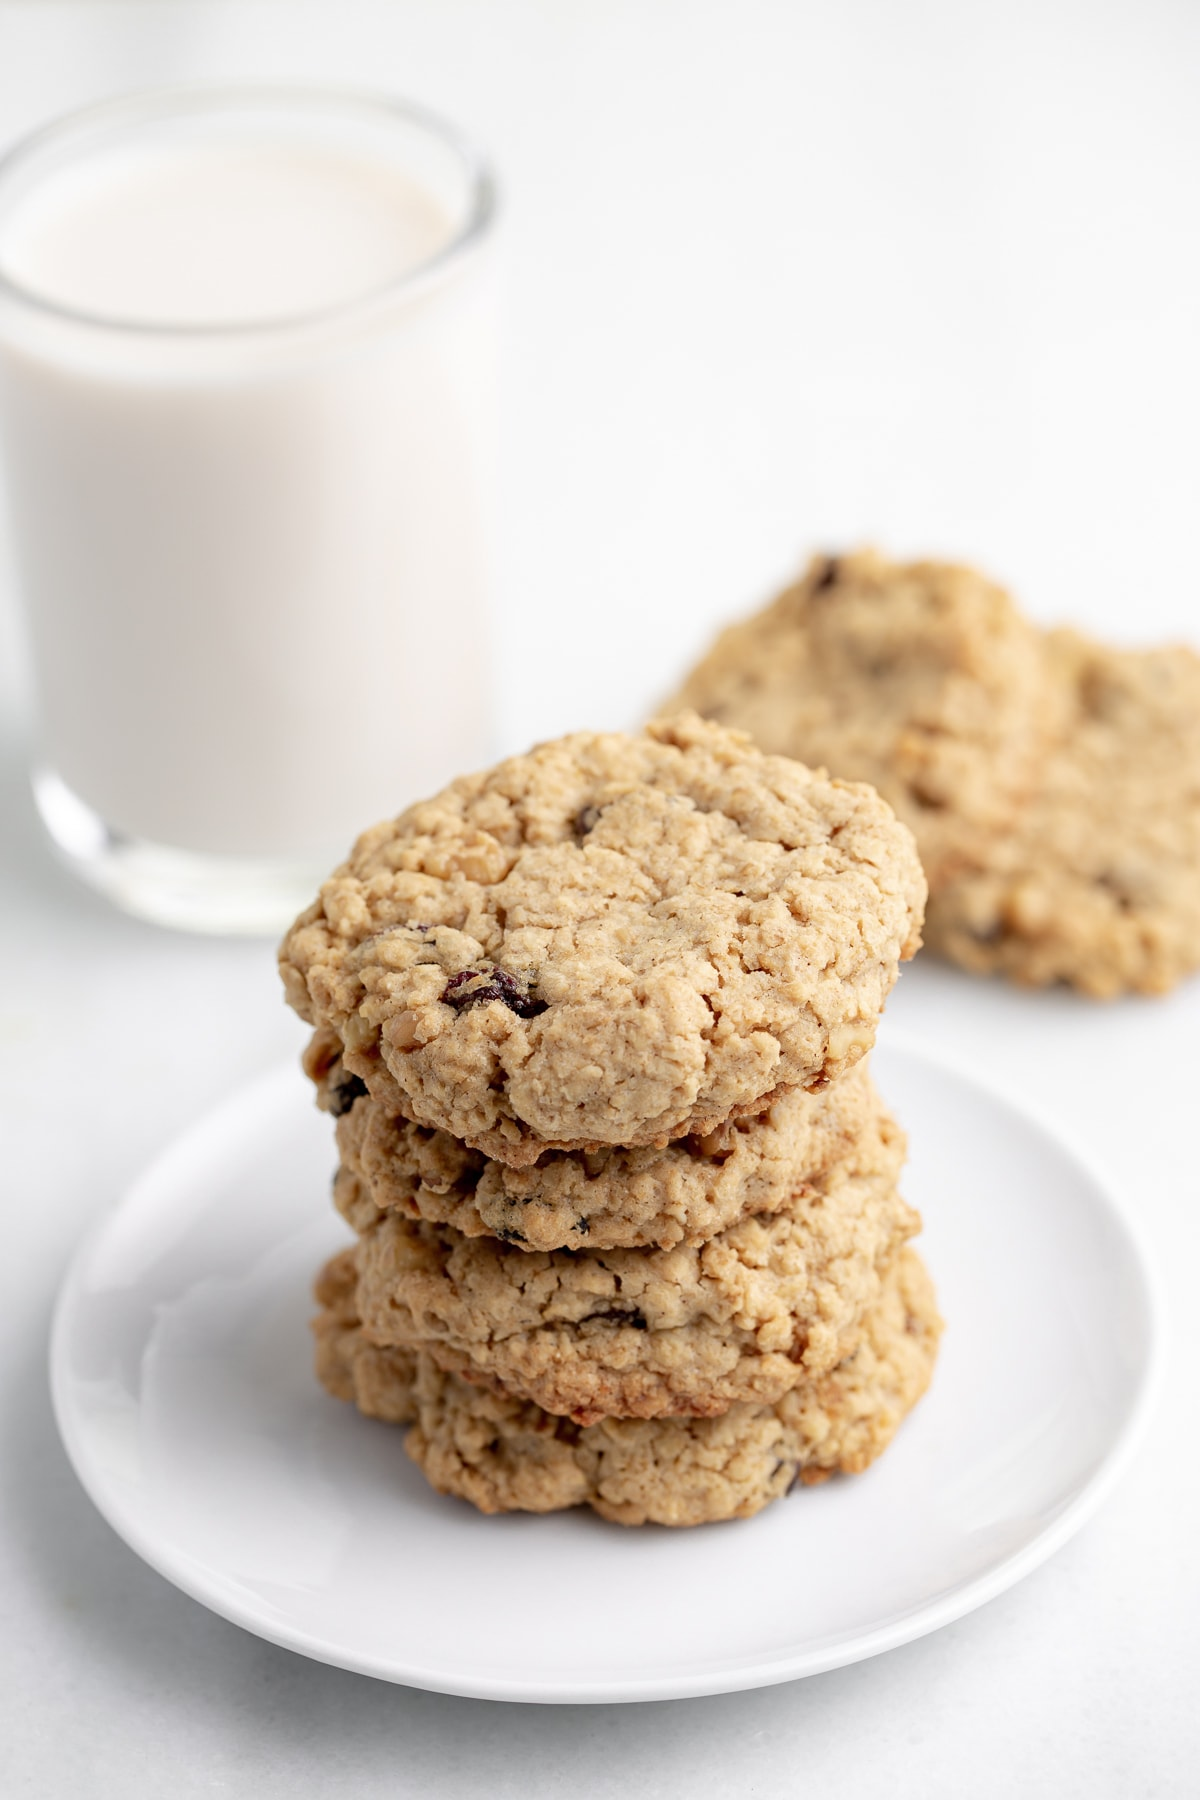 stack of 5 vegan oatmeal cookies on white plate with glass of nondairy milk and white marble background